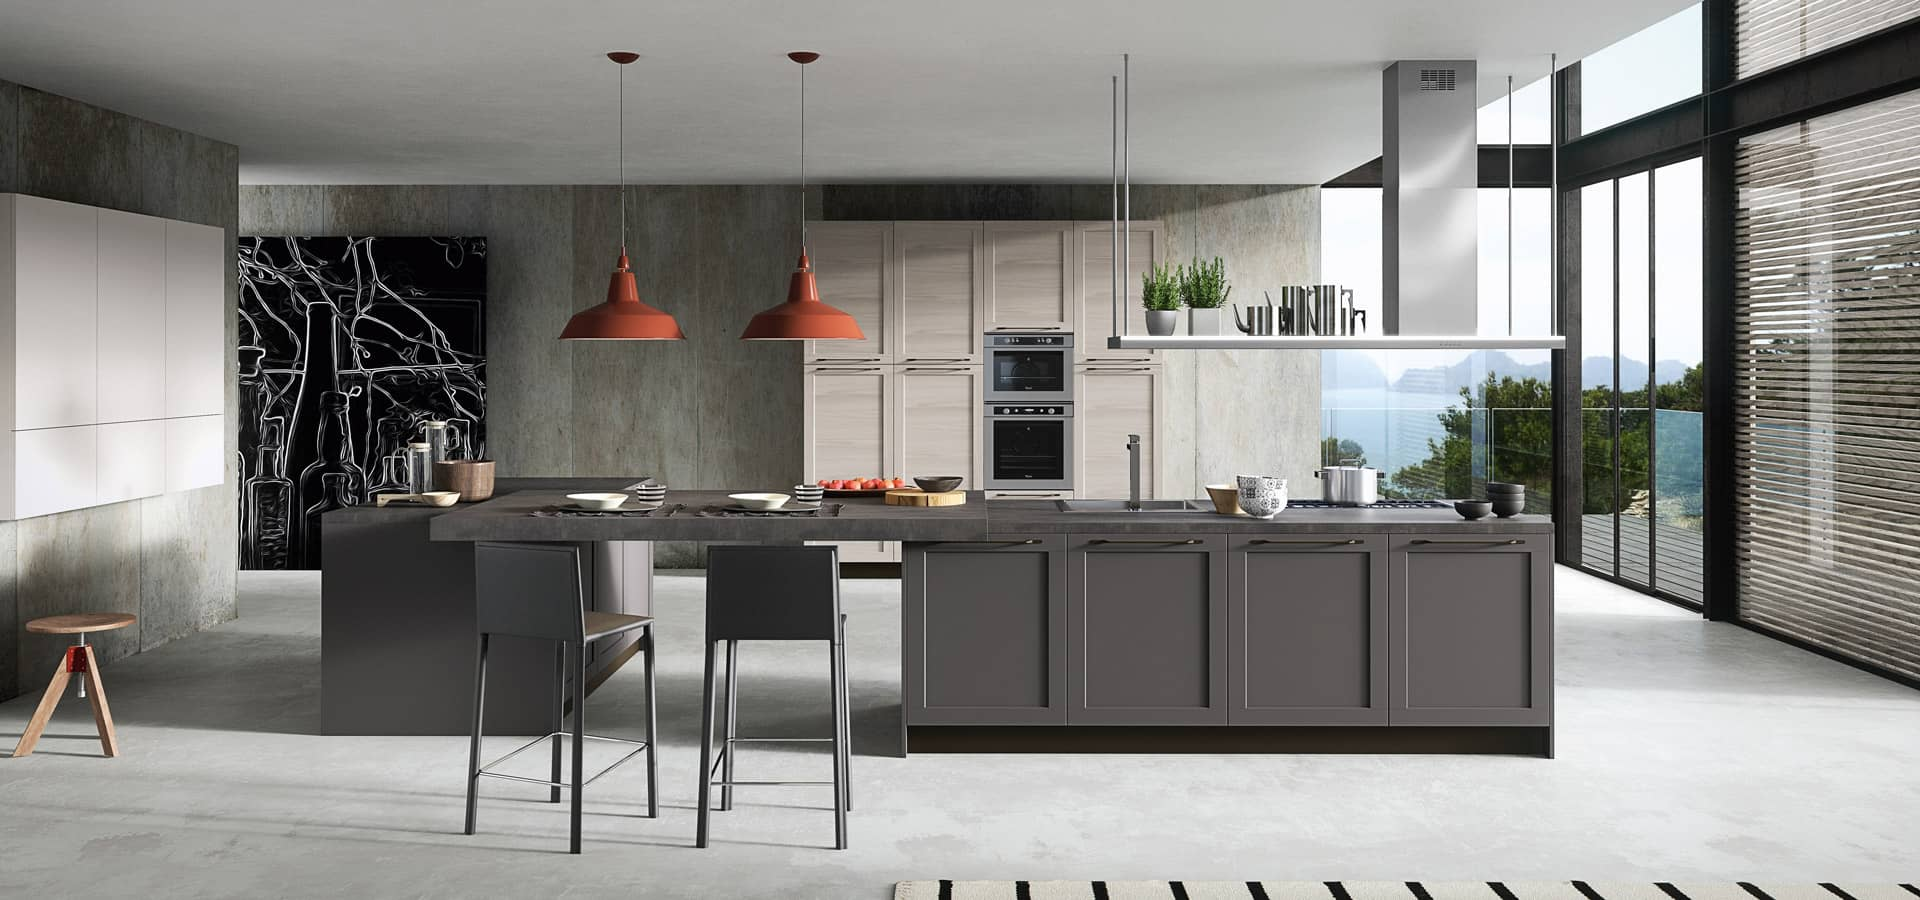 Awesome Cucine Ikea Offerte Pictures - Design & Ideas 2018 ...